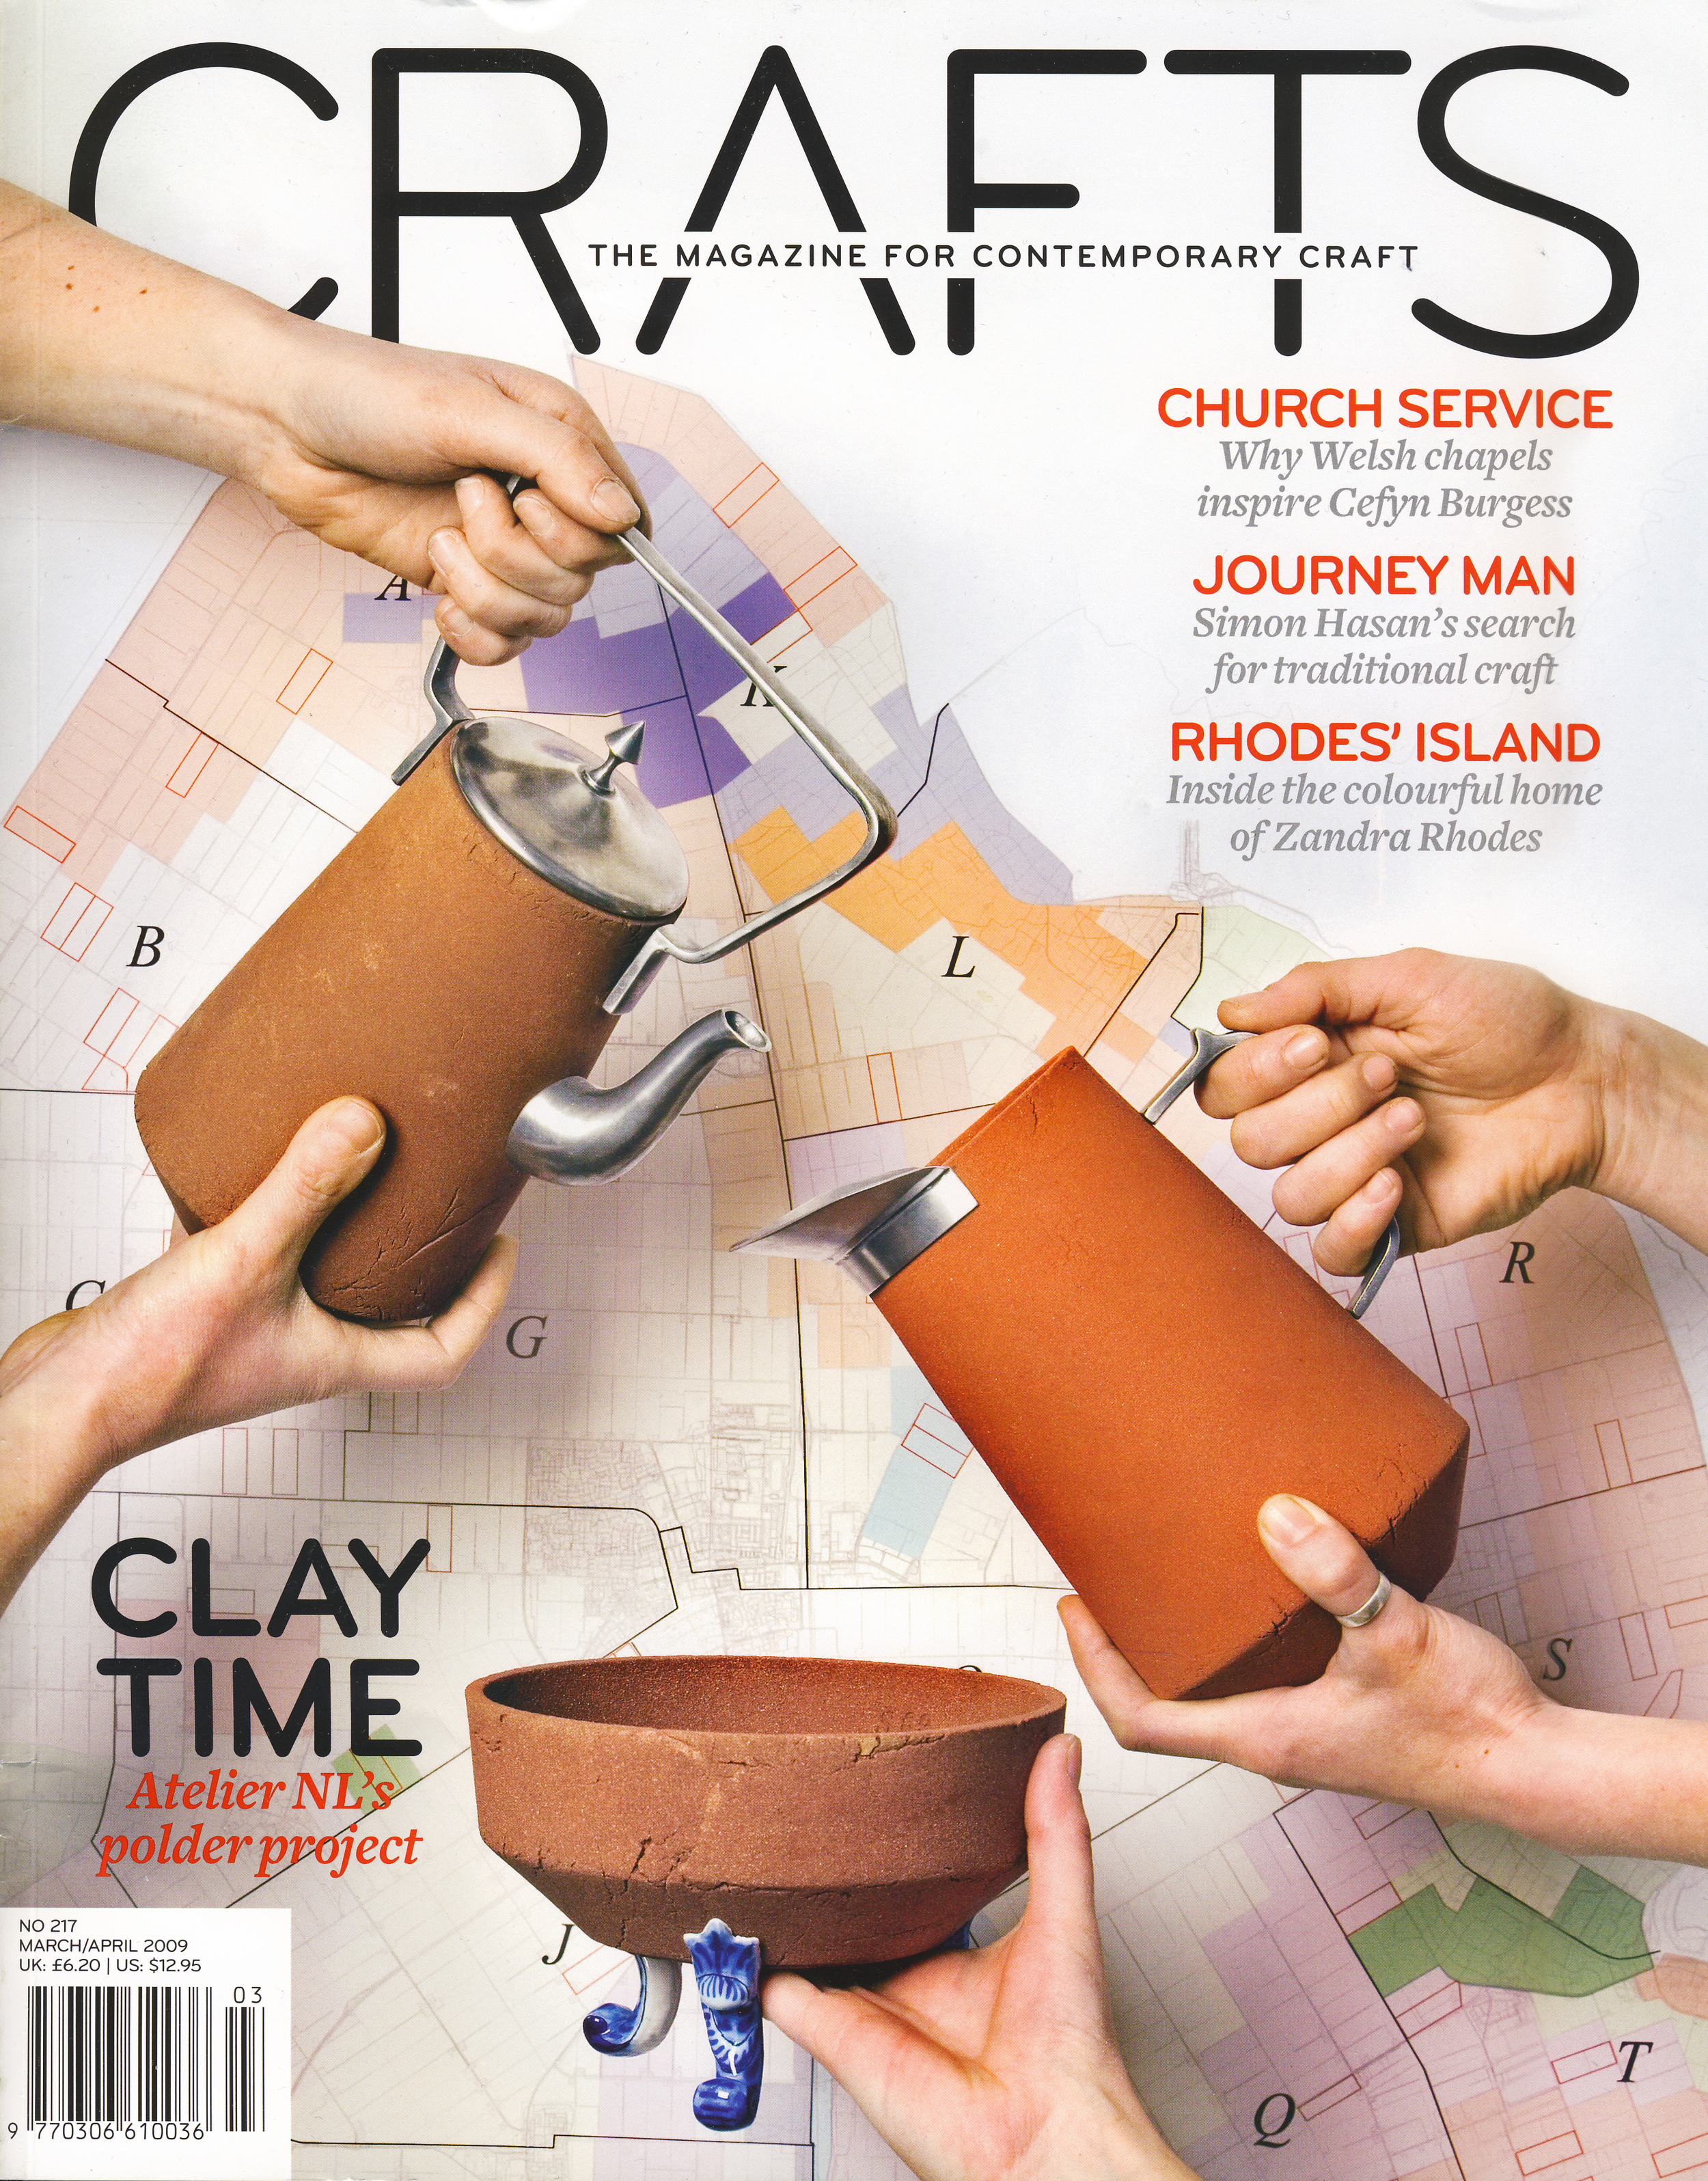 Crafts cover.jpg